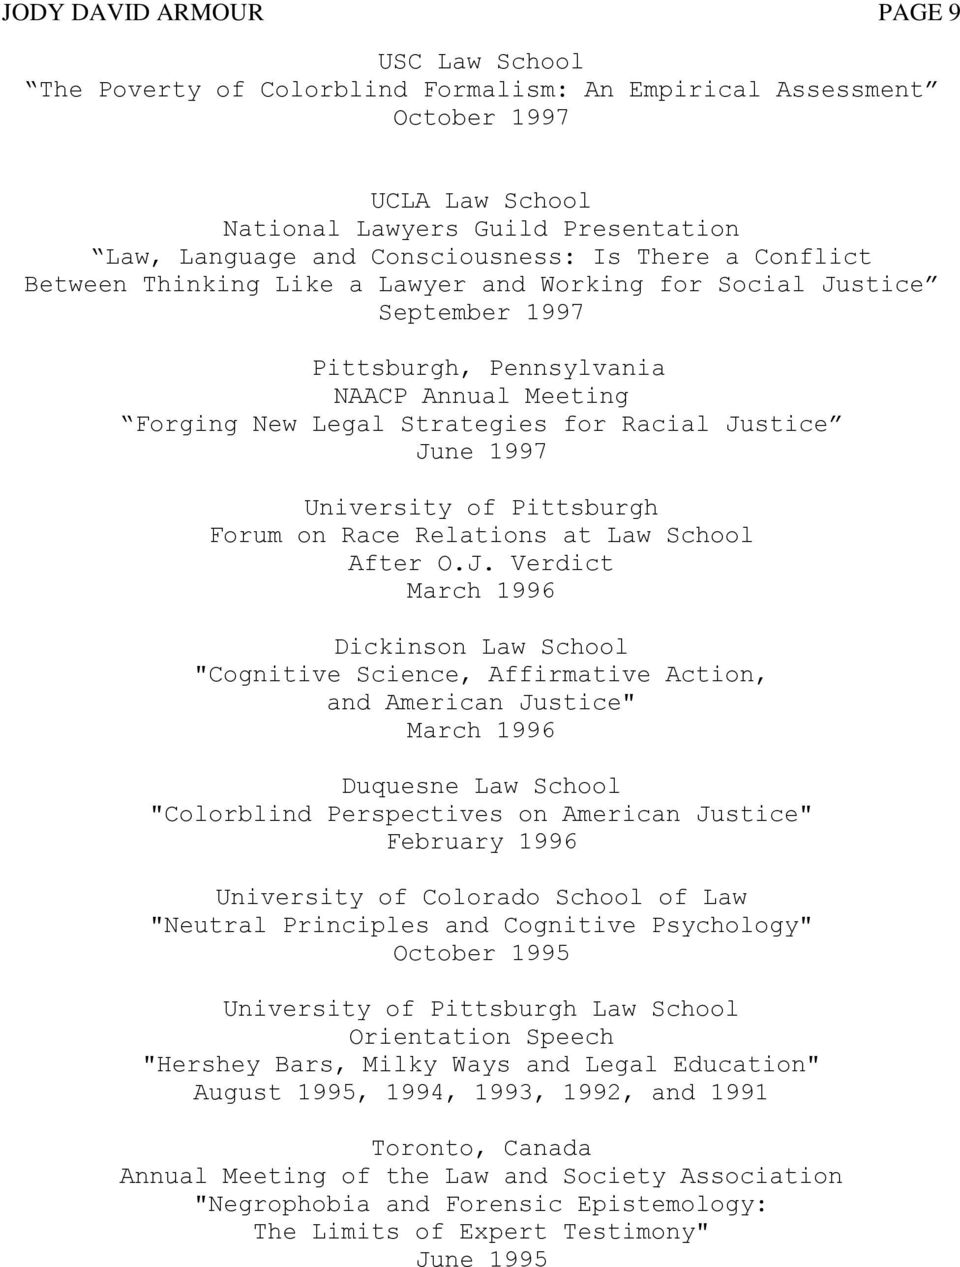 1997 University of Pittsburgh Forum on Race Relations at Law School After O.J.